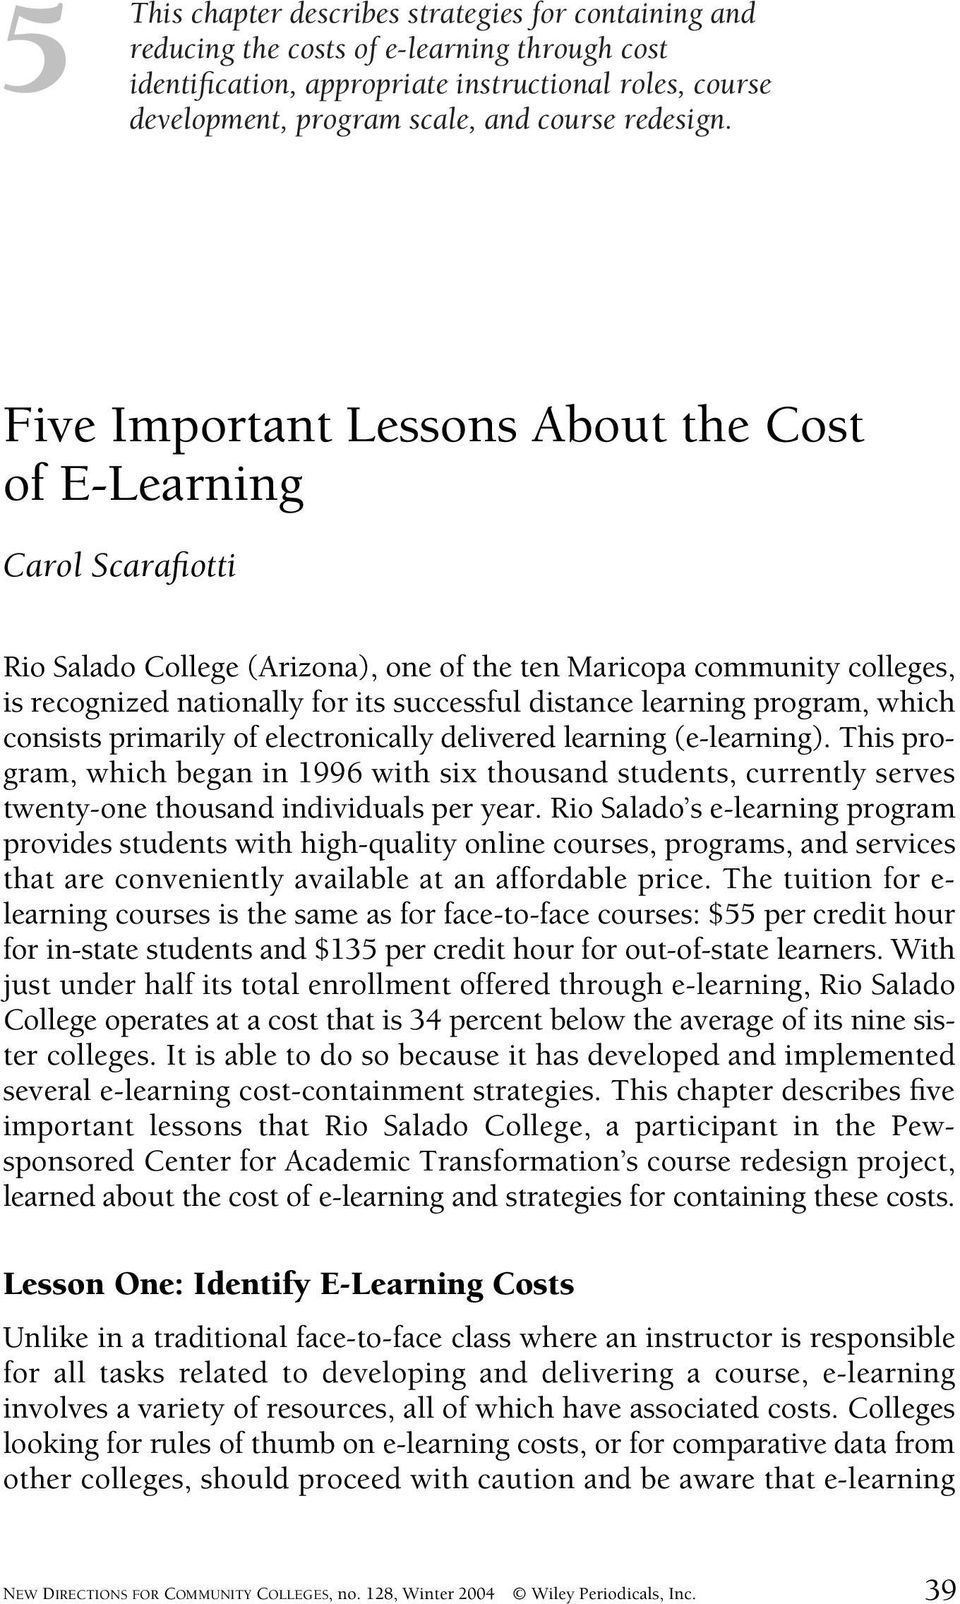 Five Important Lessons About the Cost of E-Learning Carol Scarafiotti Rio Salado College (Arizona), one of the ten Maricopa community colleges, is recognized nationally for its successful distance